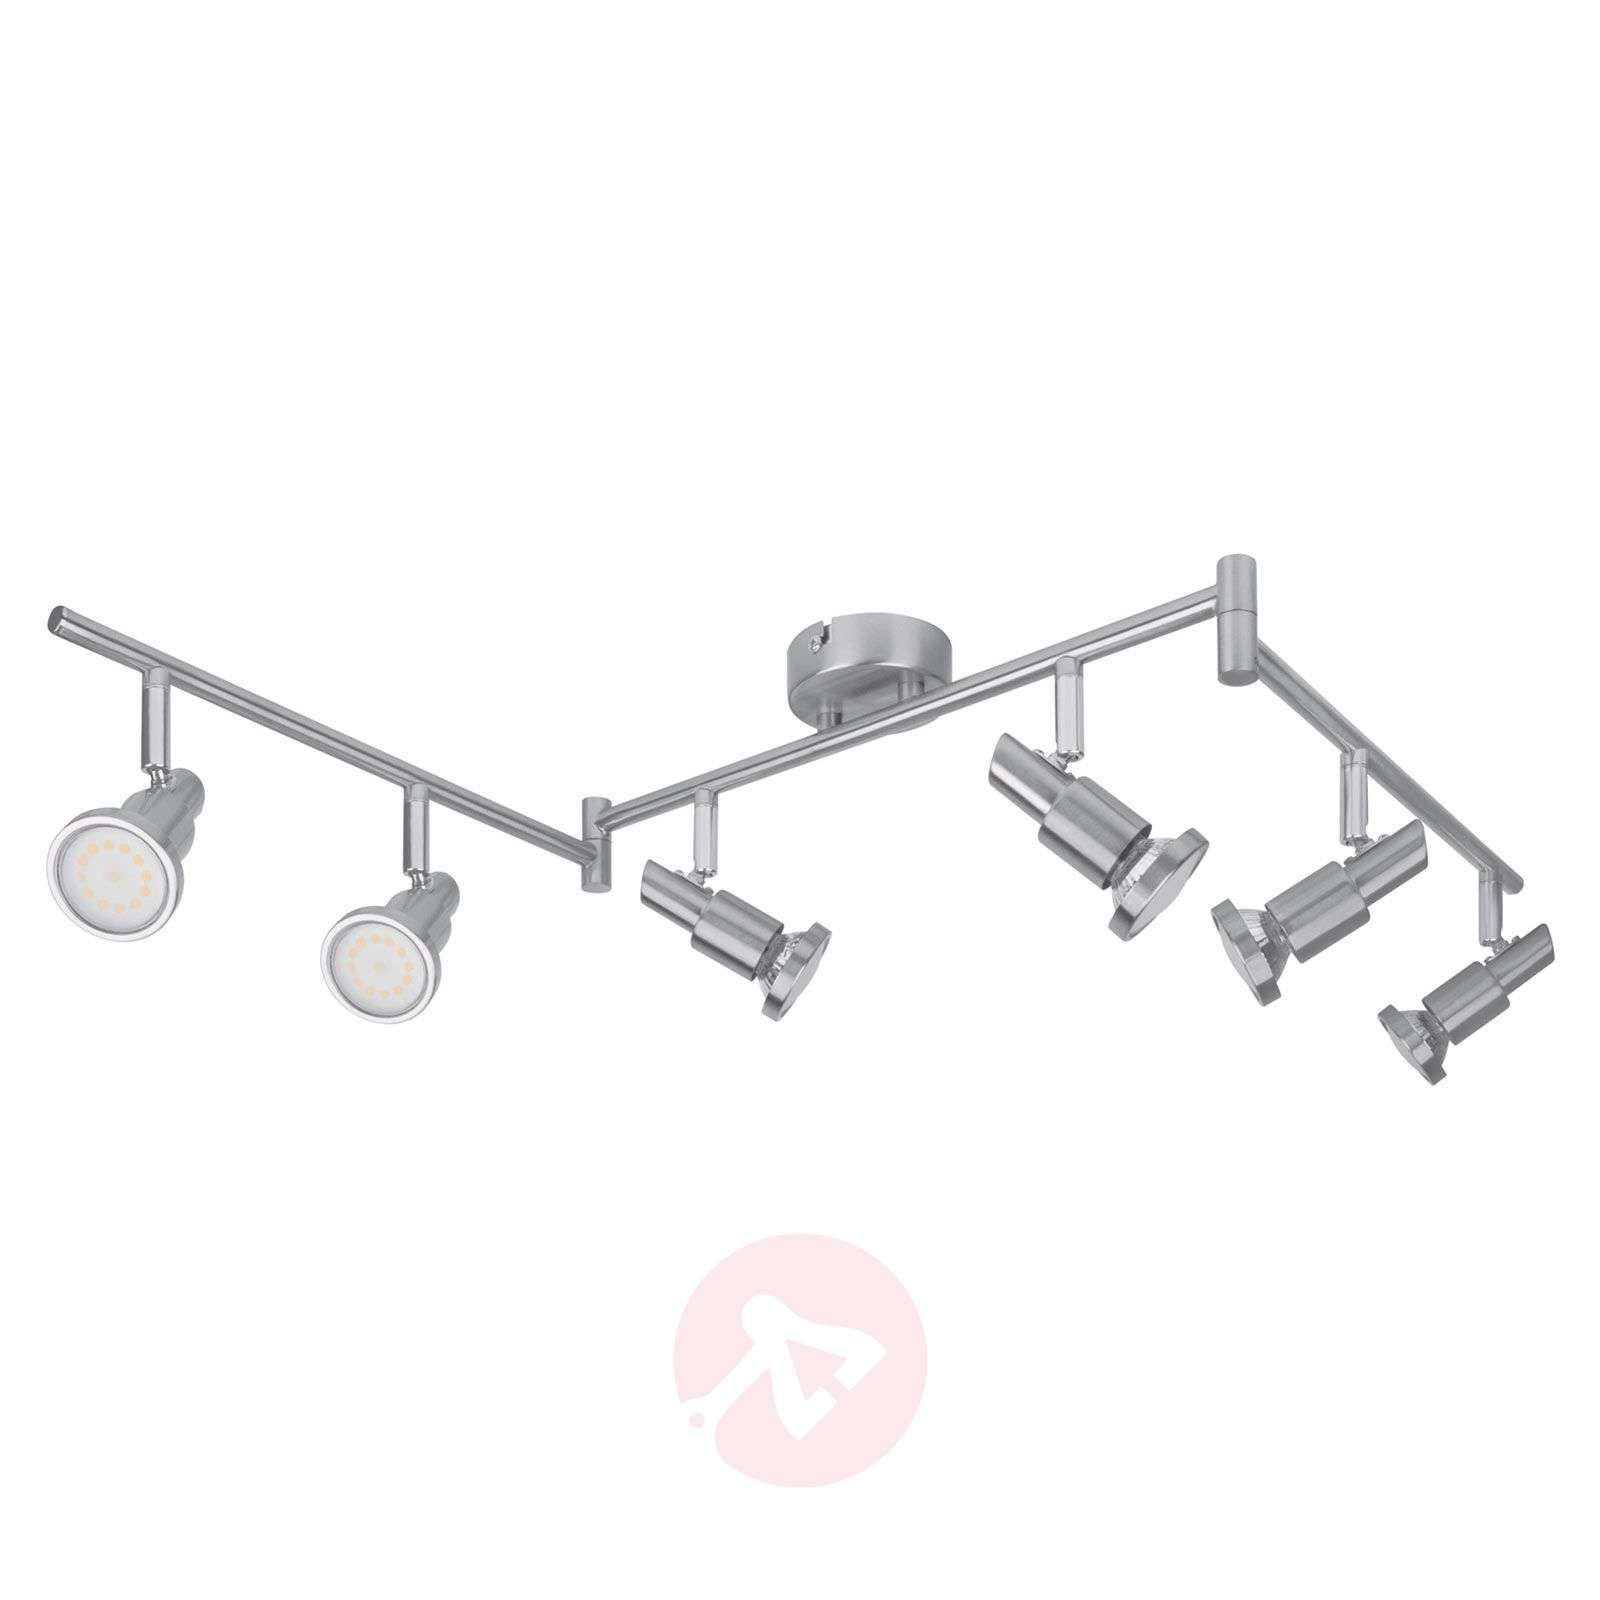 LEDVANCE Niclas spot LED, nickel, 6 lampes-6106071-01